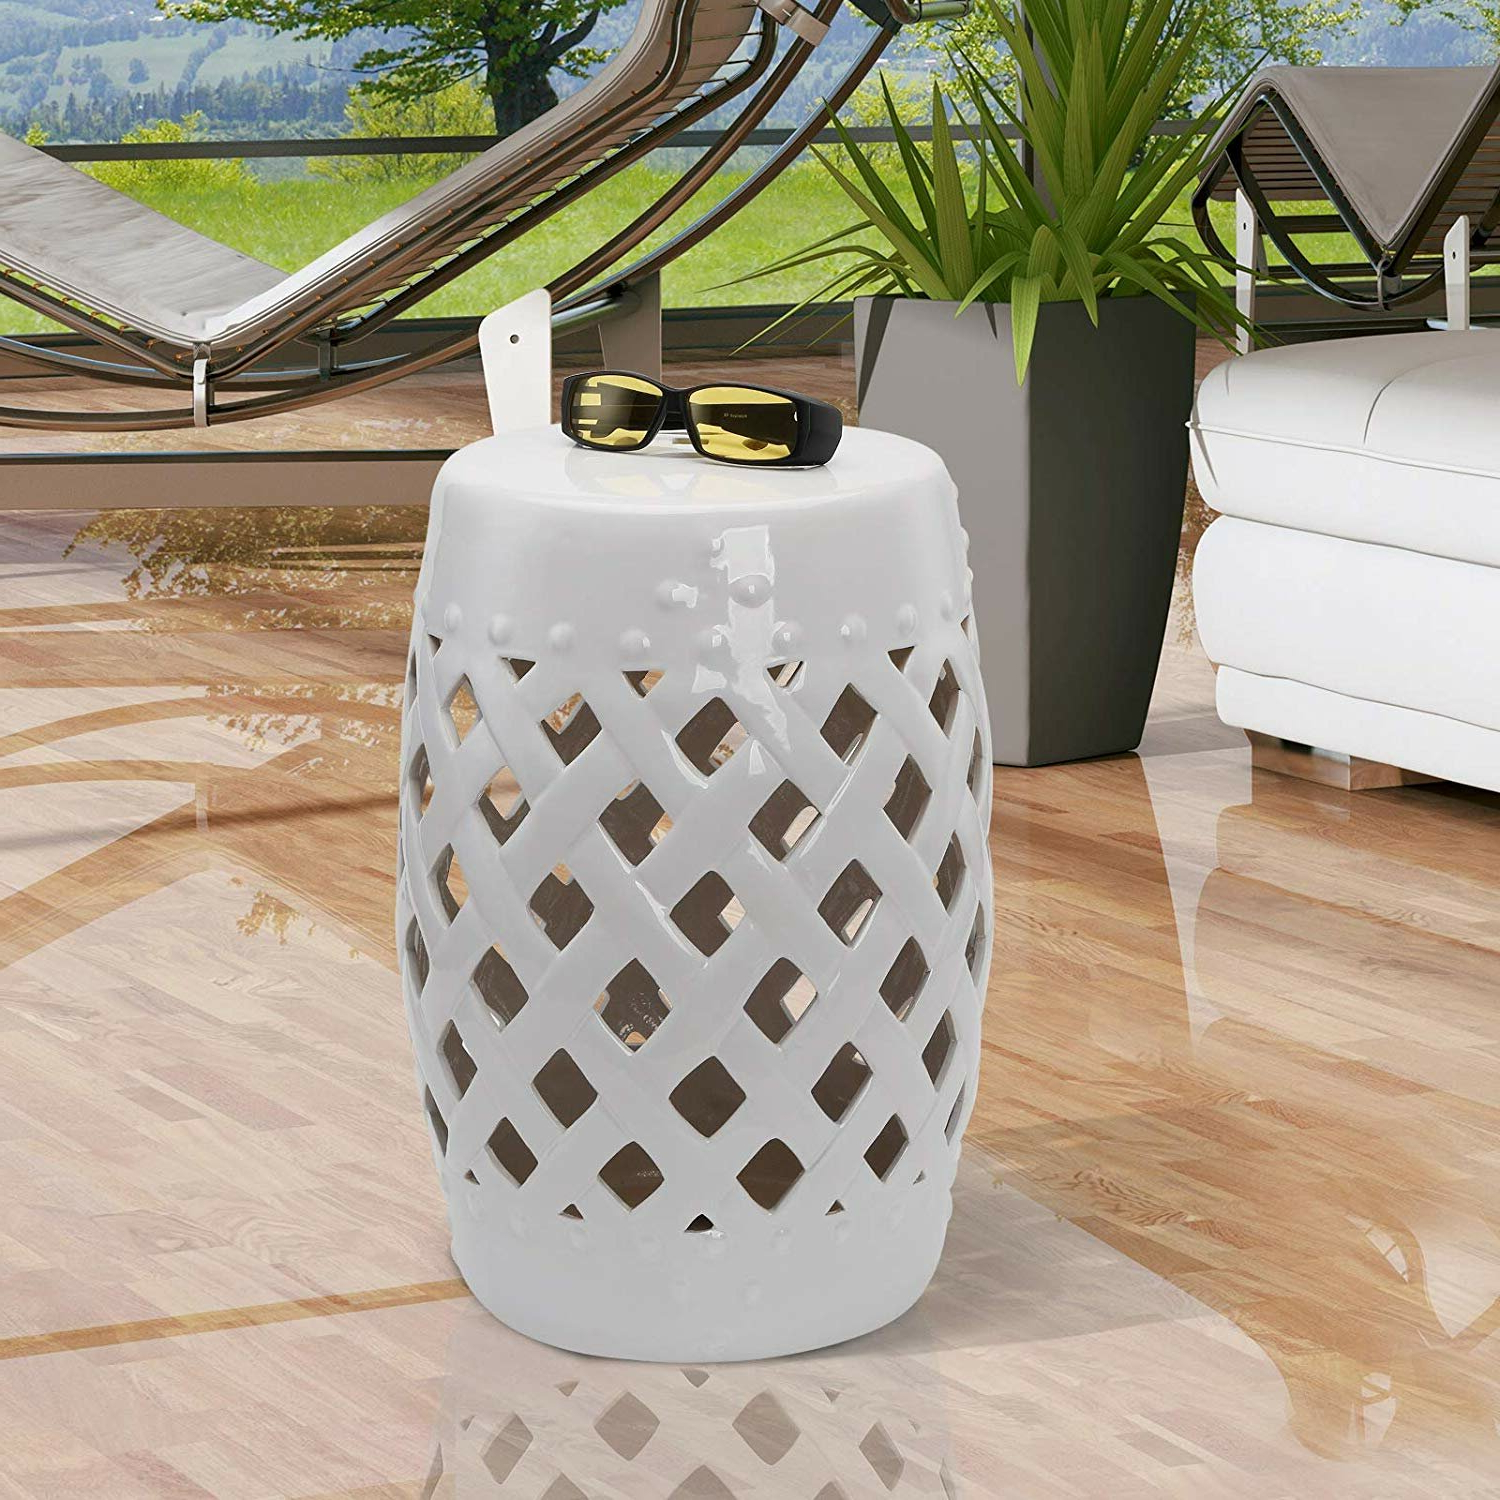 Tillia Ceramic Garden Stool For Most Recently Released Harwich Ceramic Garden Stools (View 6 of 30)